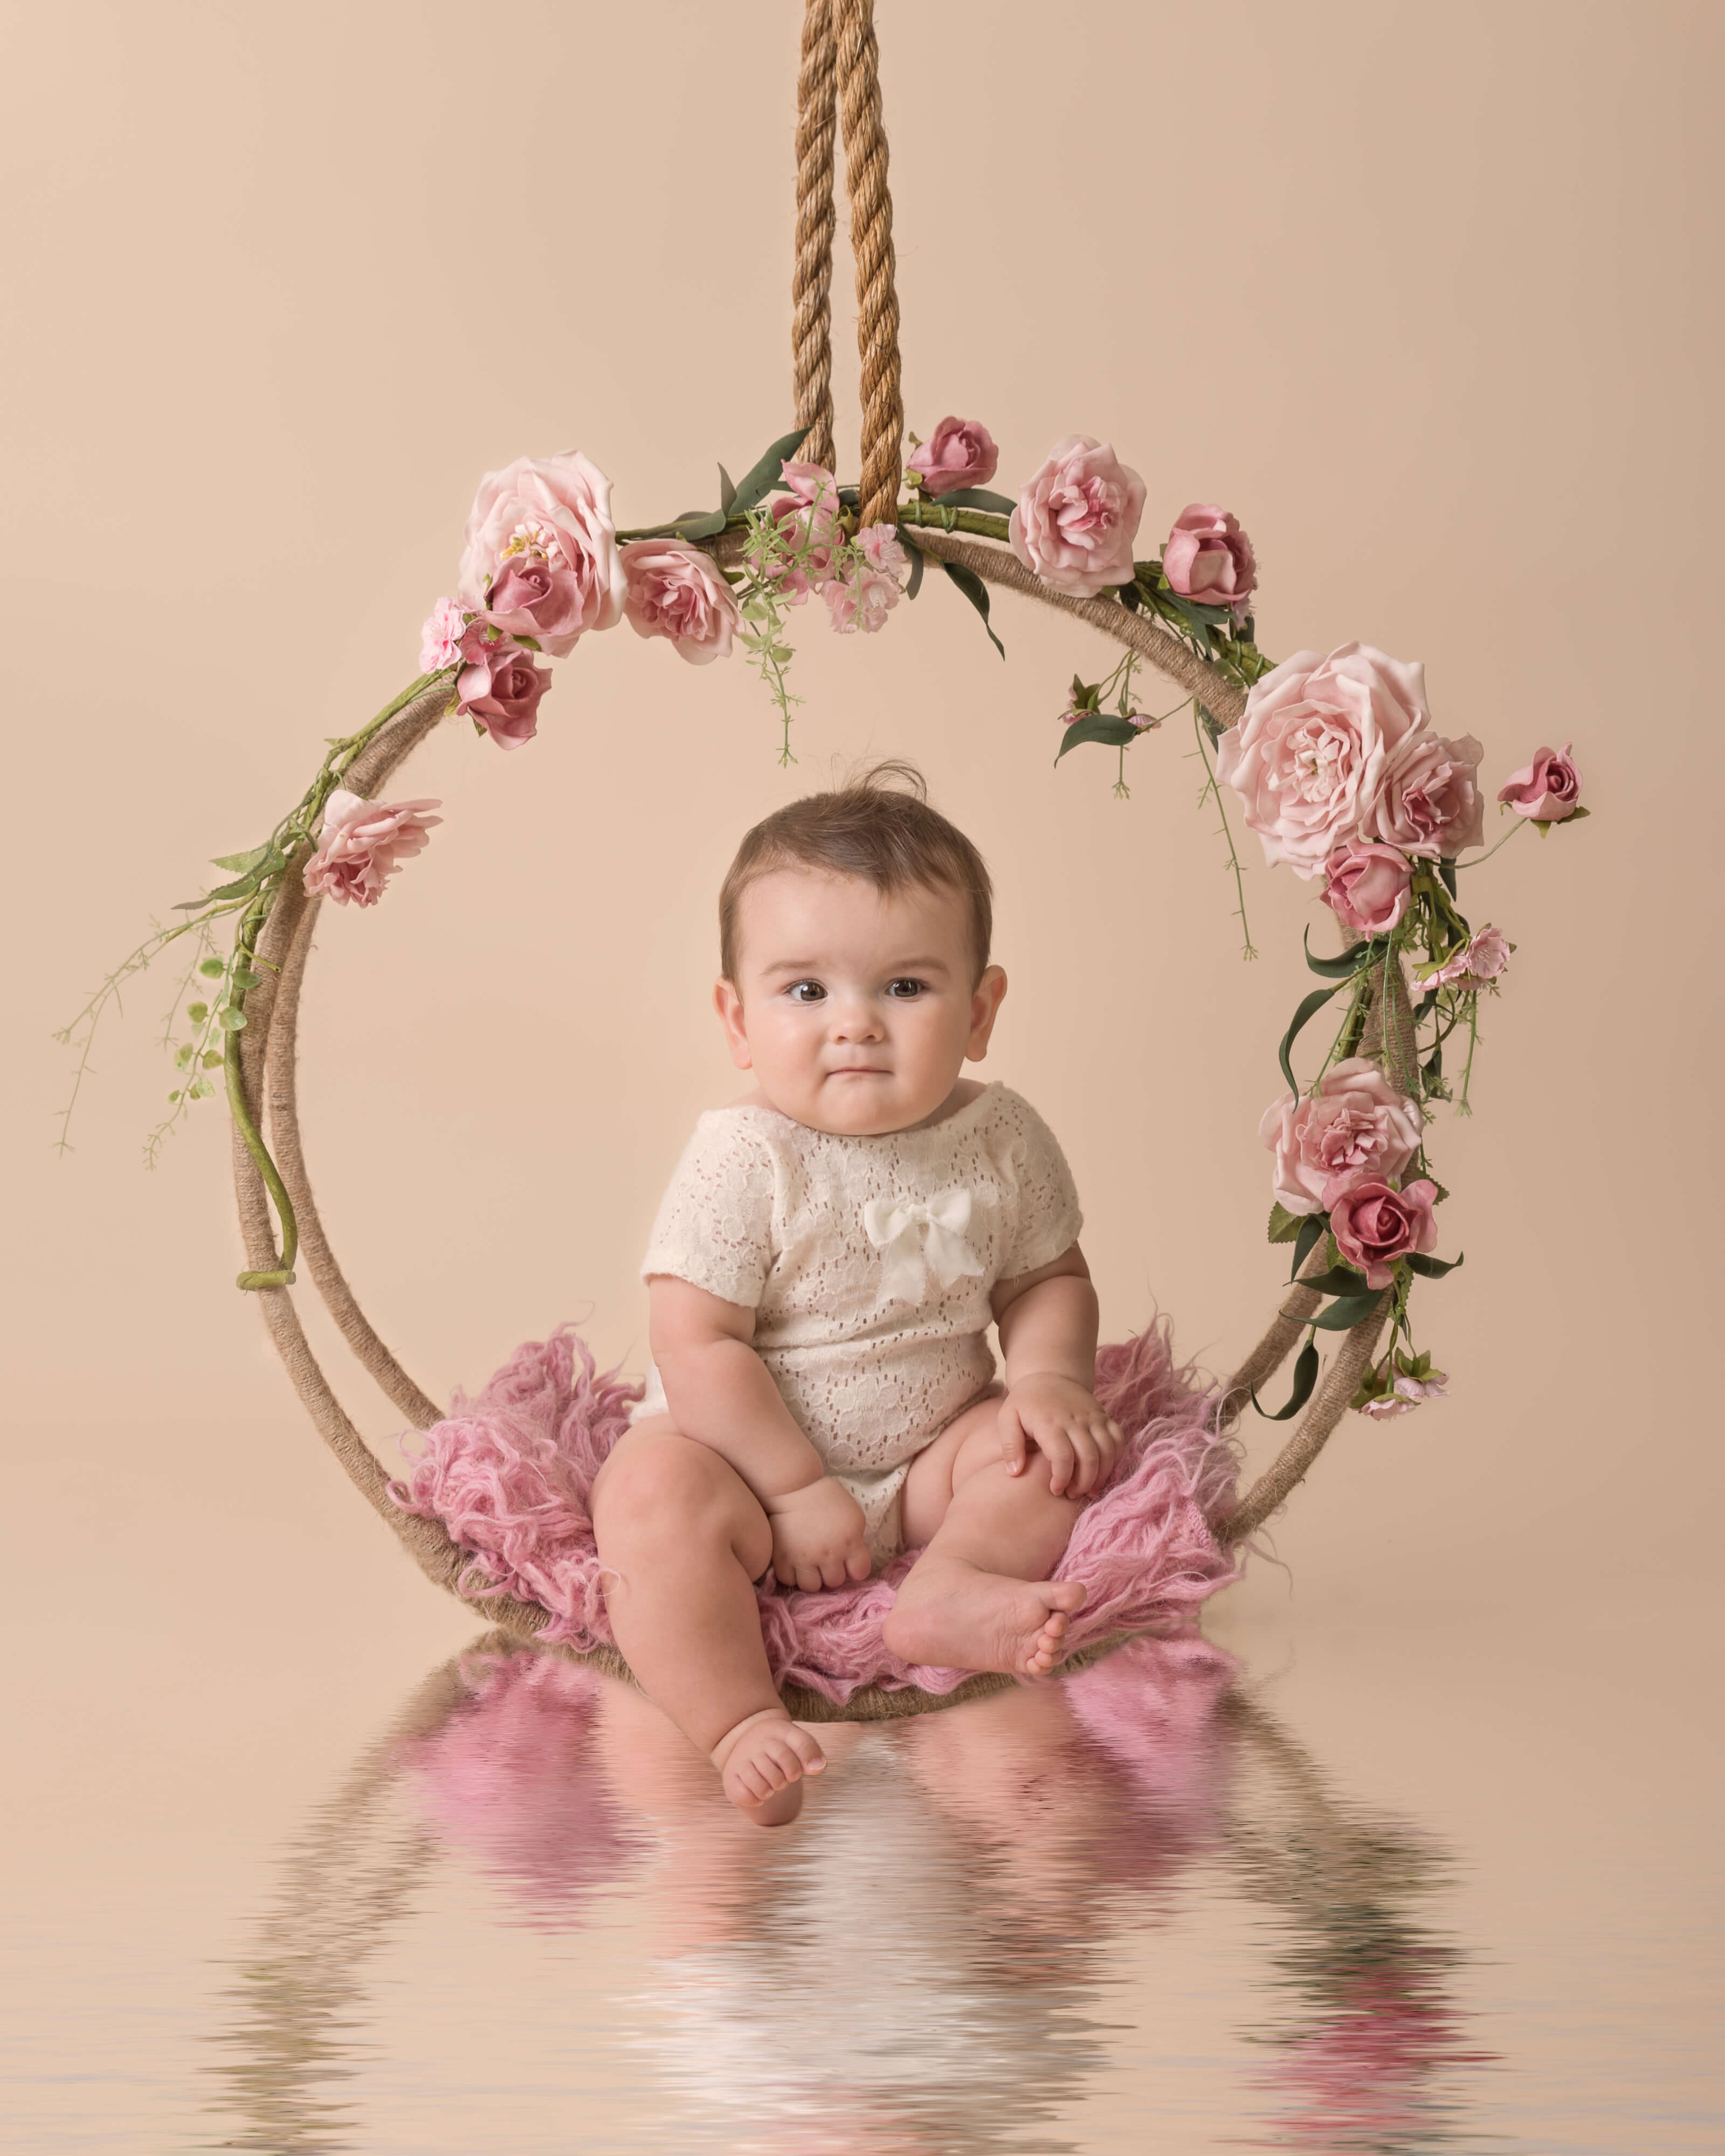 Slice of Life Little Sitters Session Gallery - Baby girl sat in a pink floral arrangement